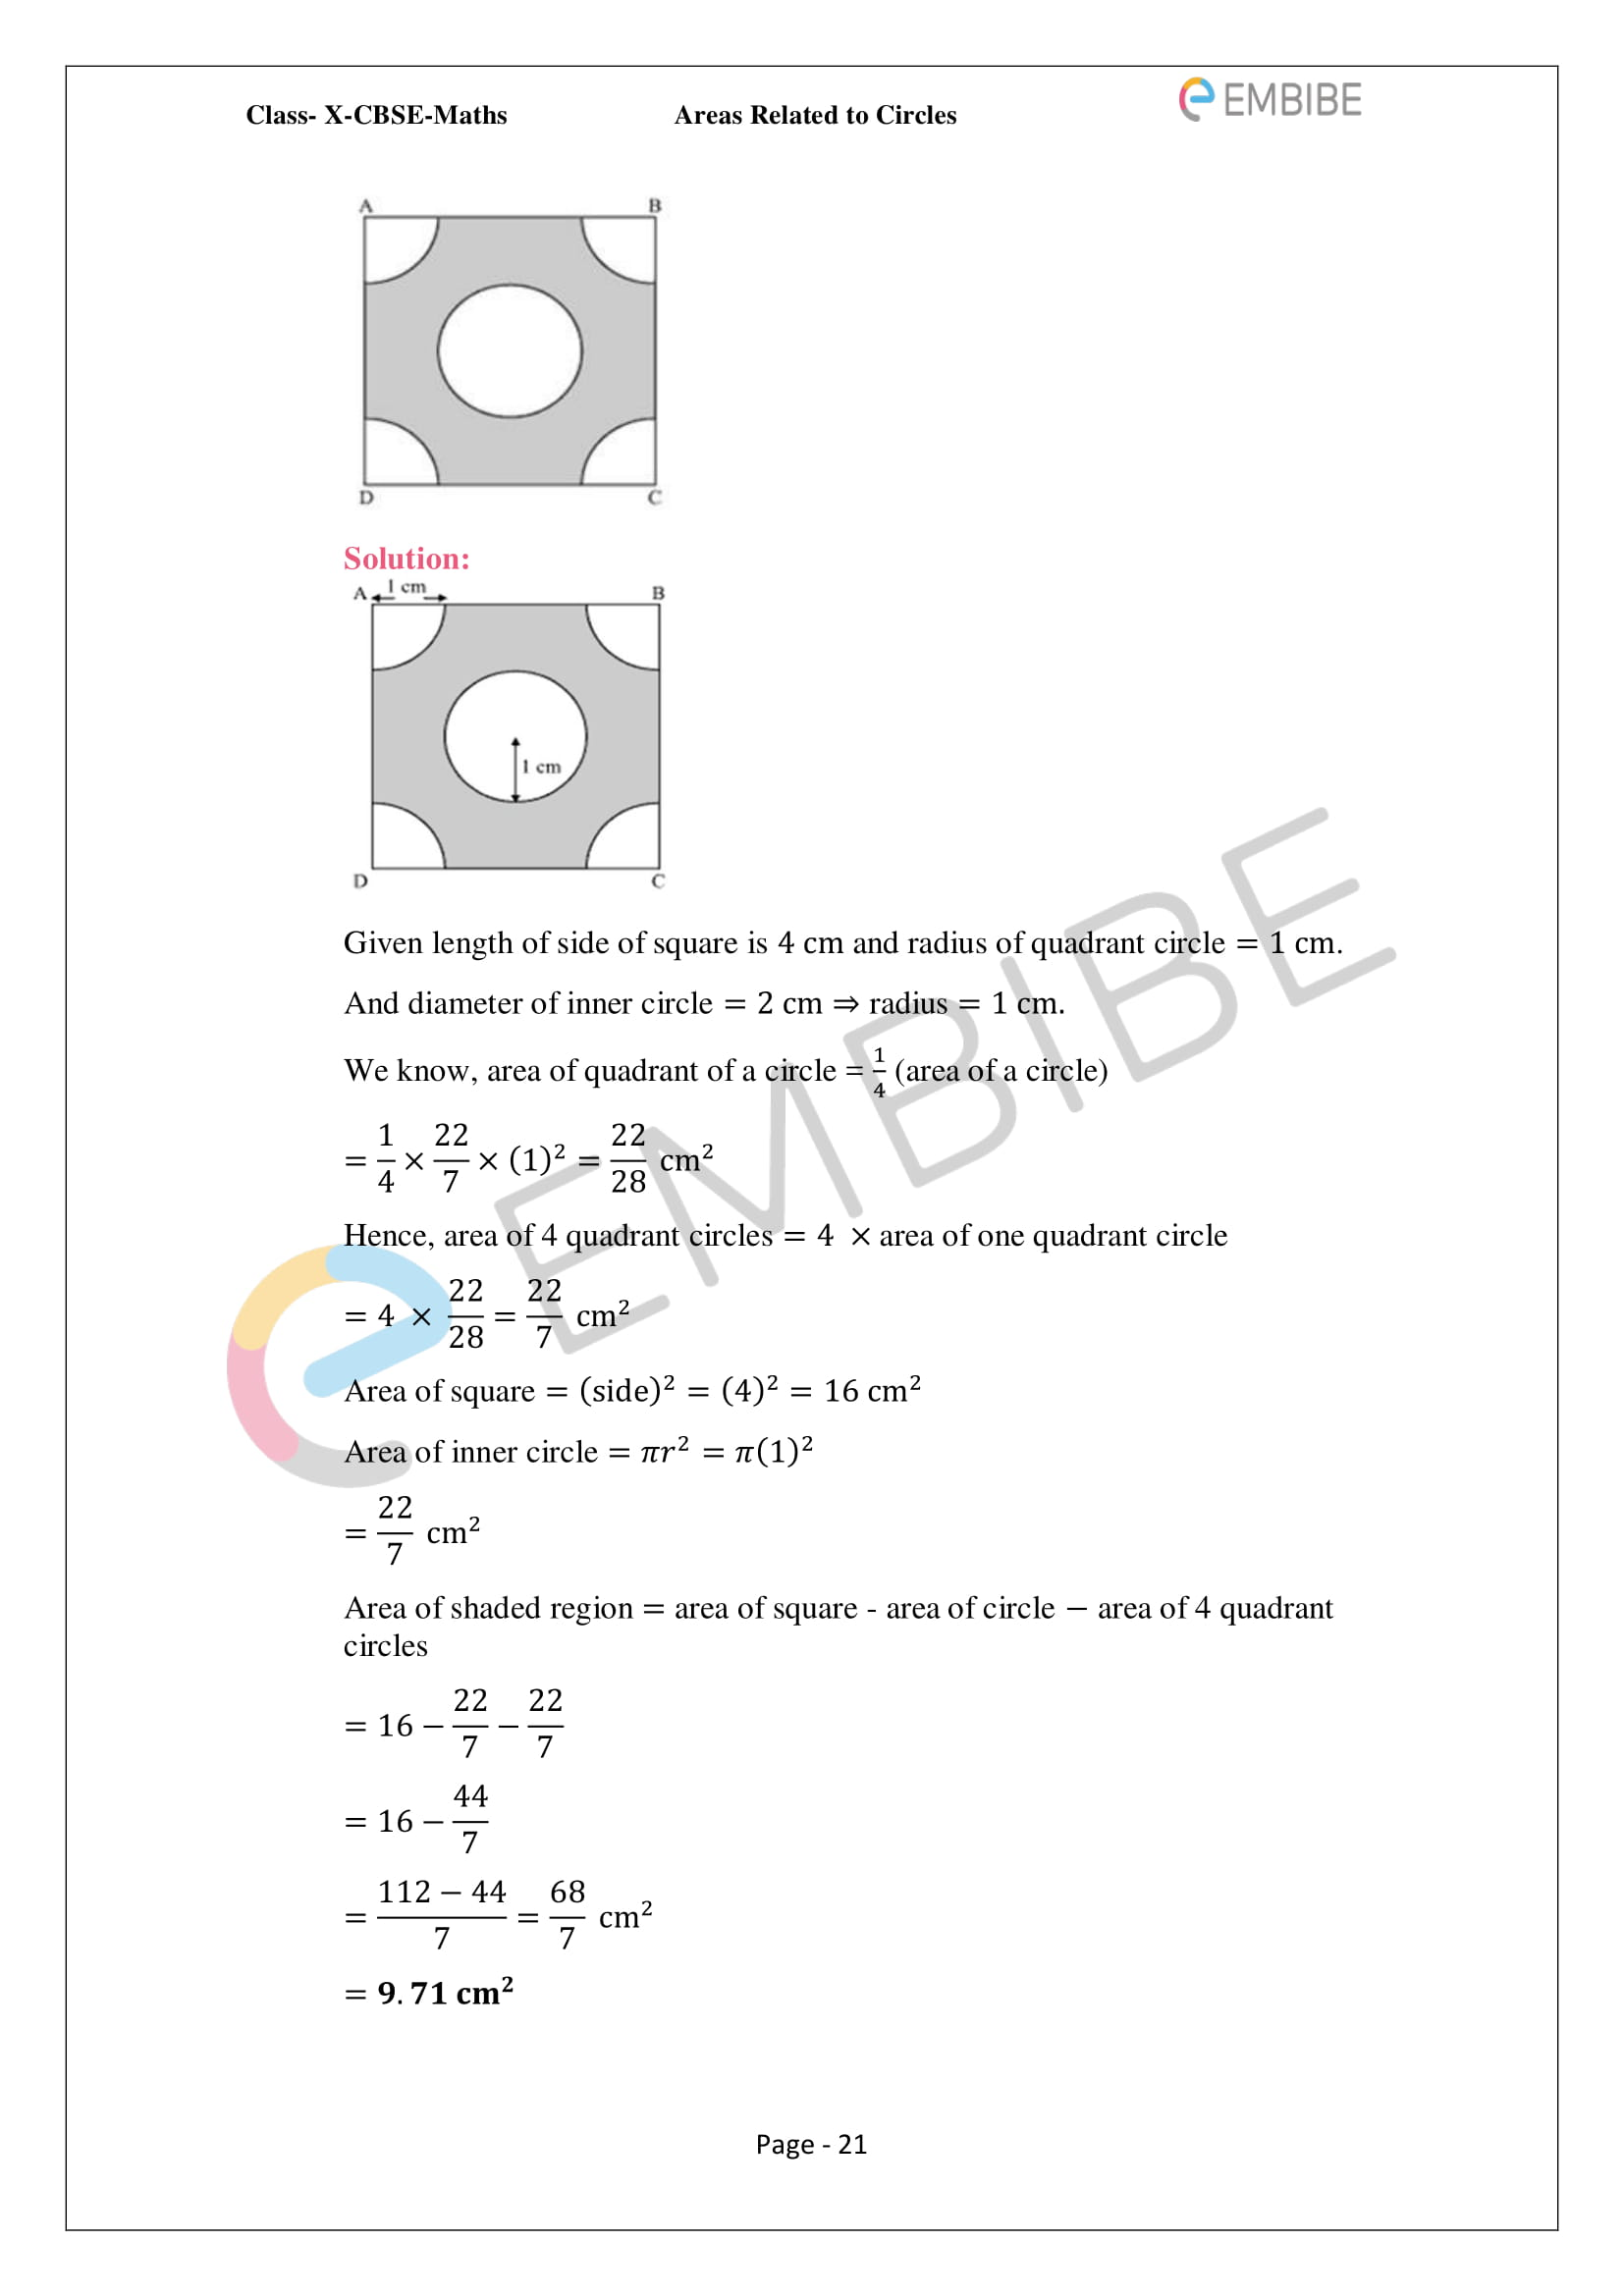 CBSE NCERT Solutions For Class 10 Maths Chapter 12 - Areas Related To Circle - 21